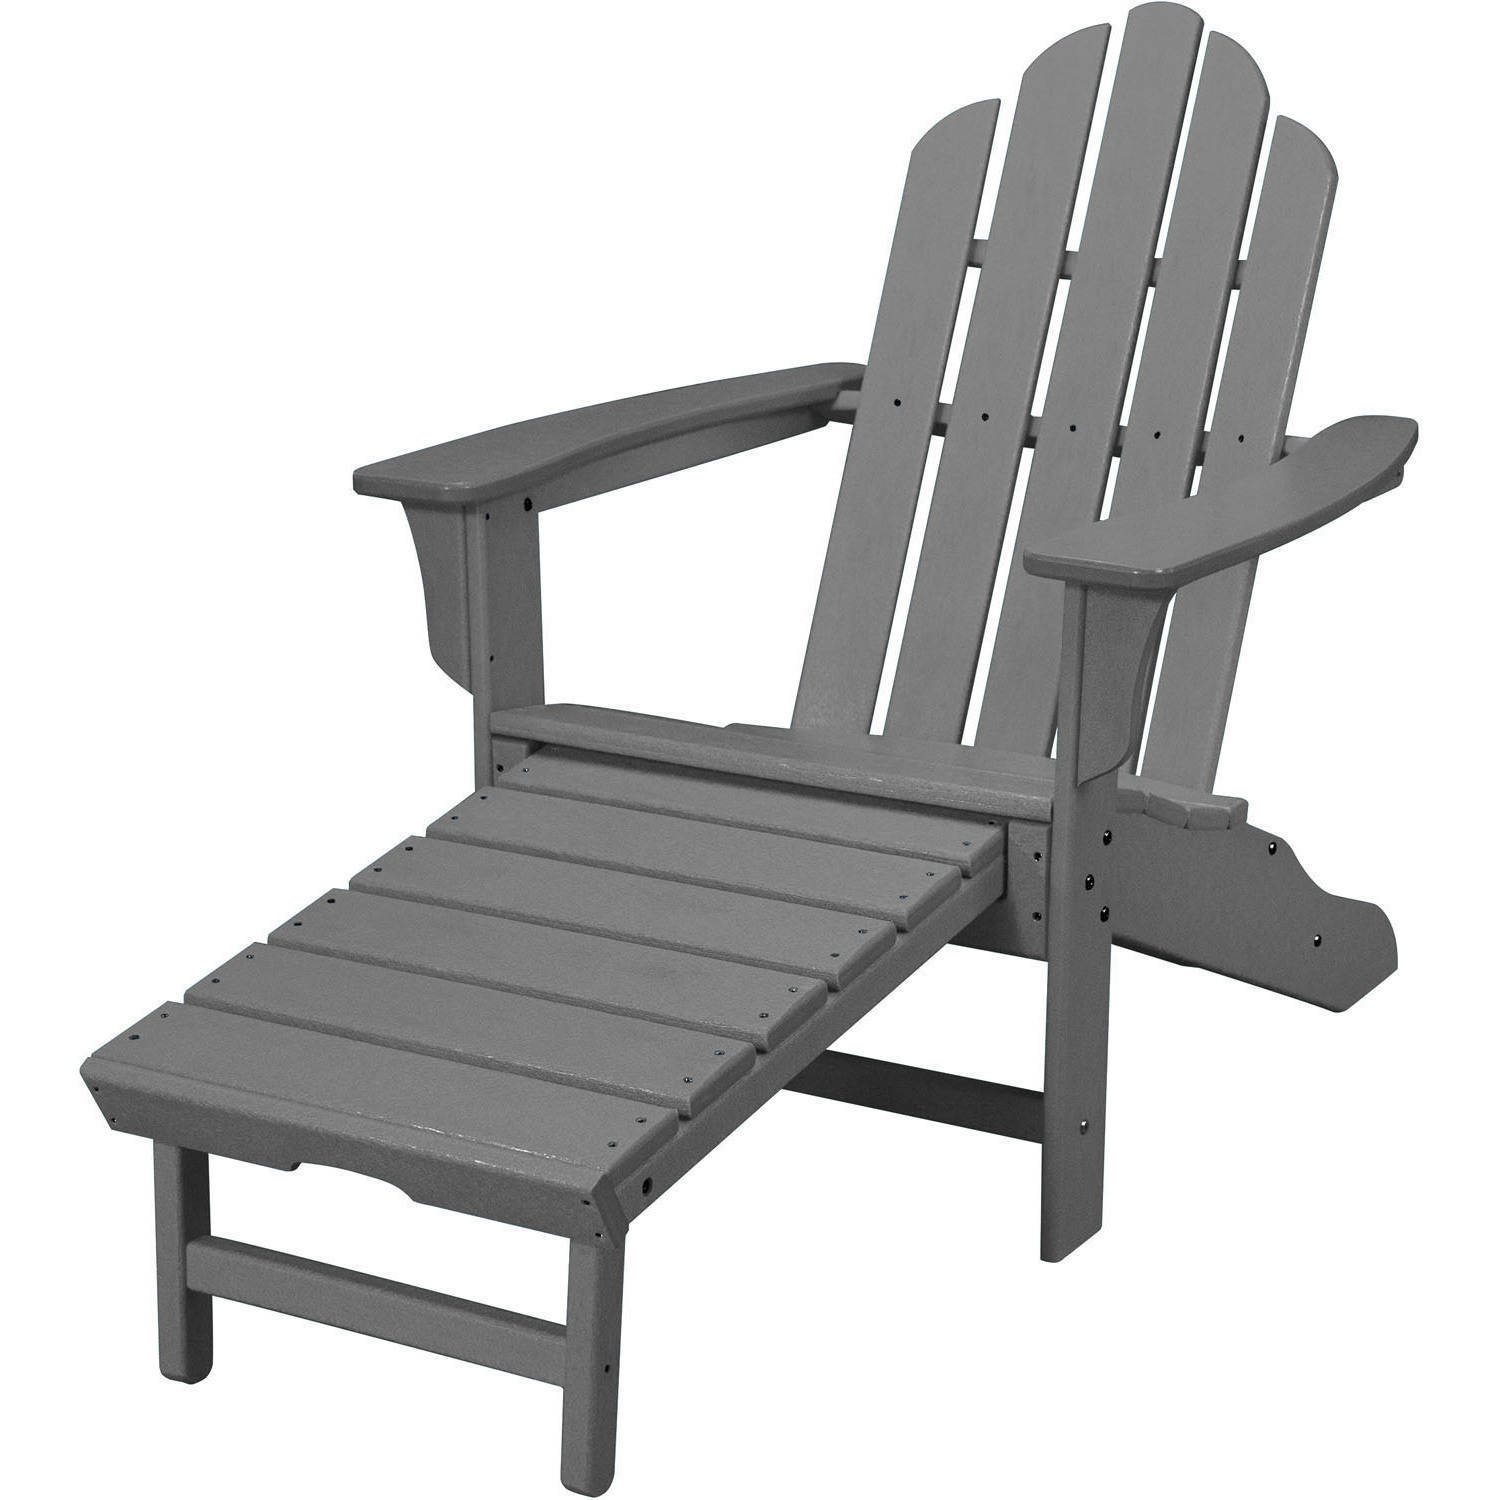 Hanover Outdoor All-Weather Contoured Adirondack Chair with Hideaway Ottoman by Hanover Outdoor